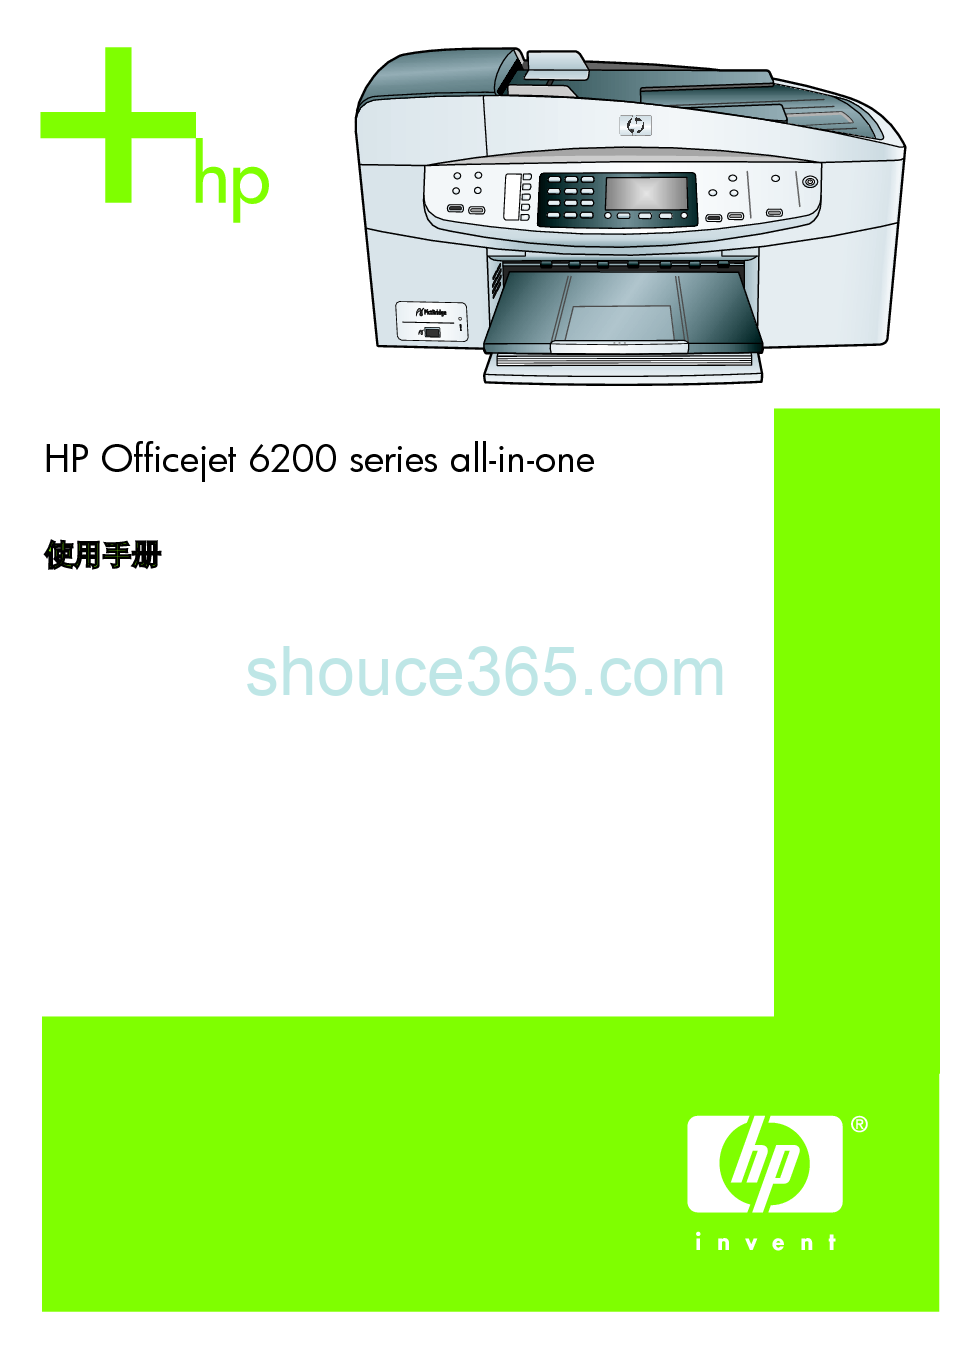 惠普 HP Officejet 6200 使用手册 封面